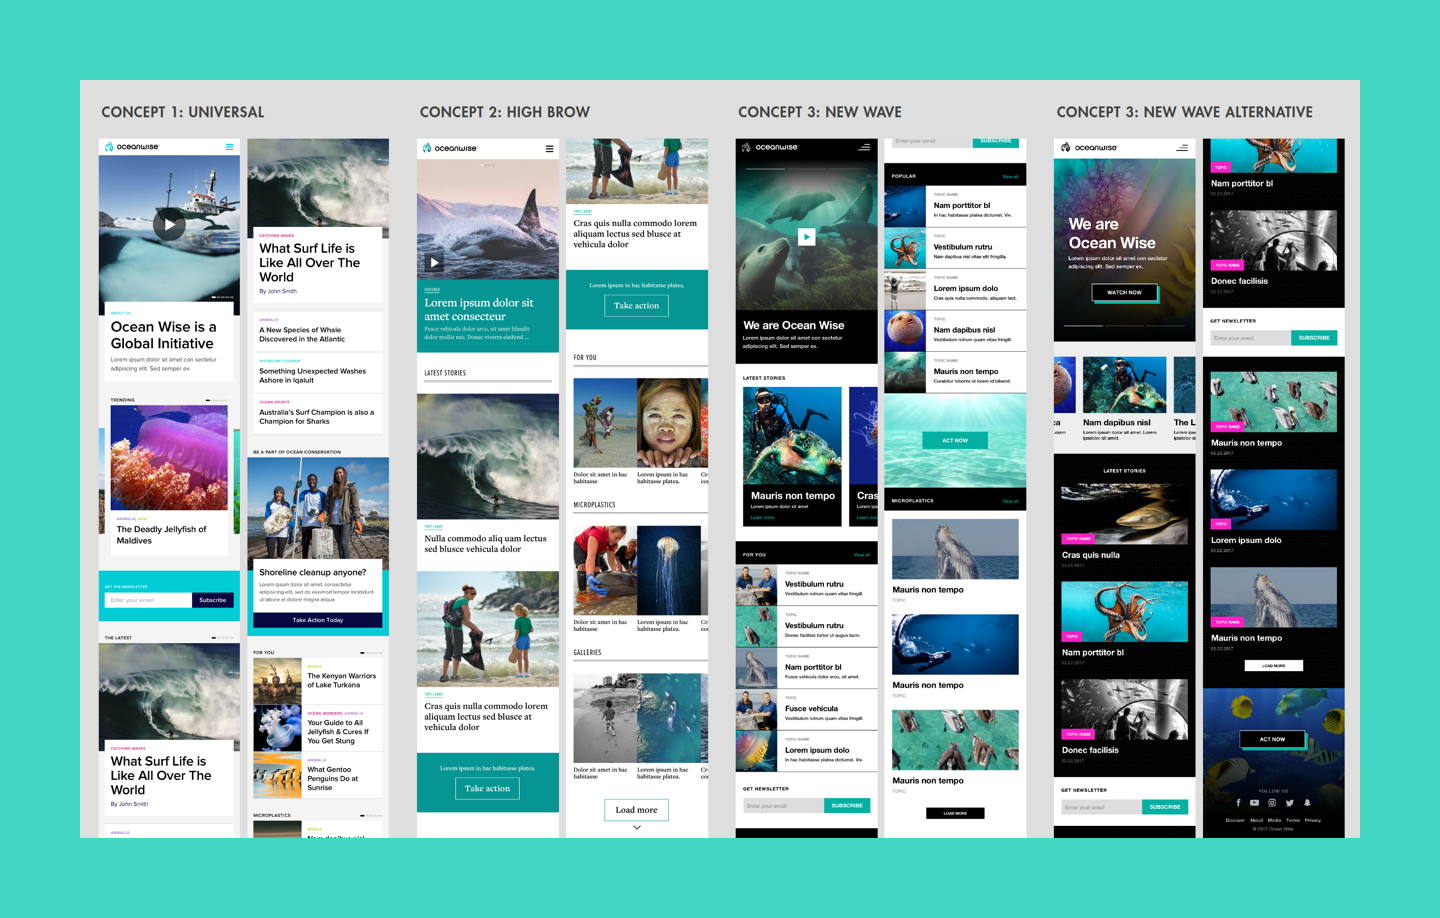 Brand proposals for the Ocean Wise platform